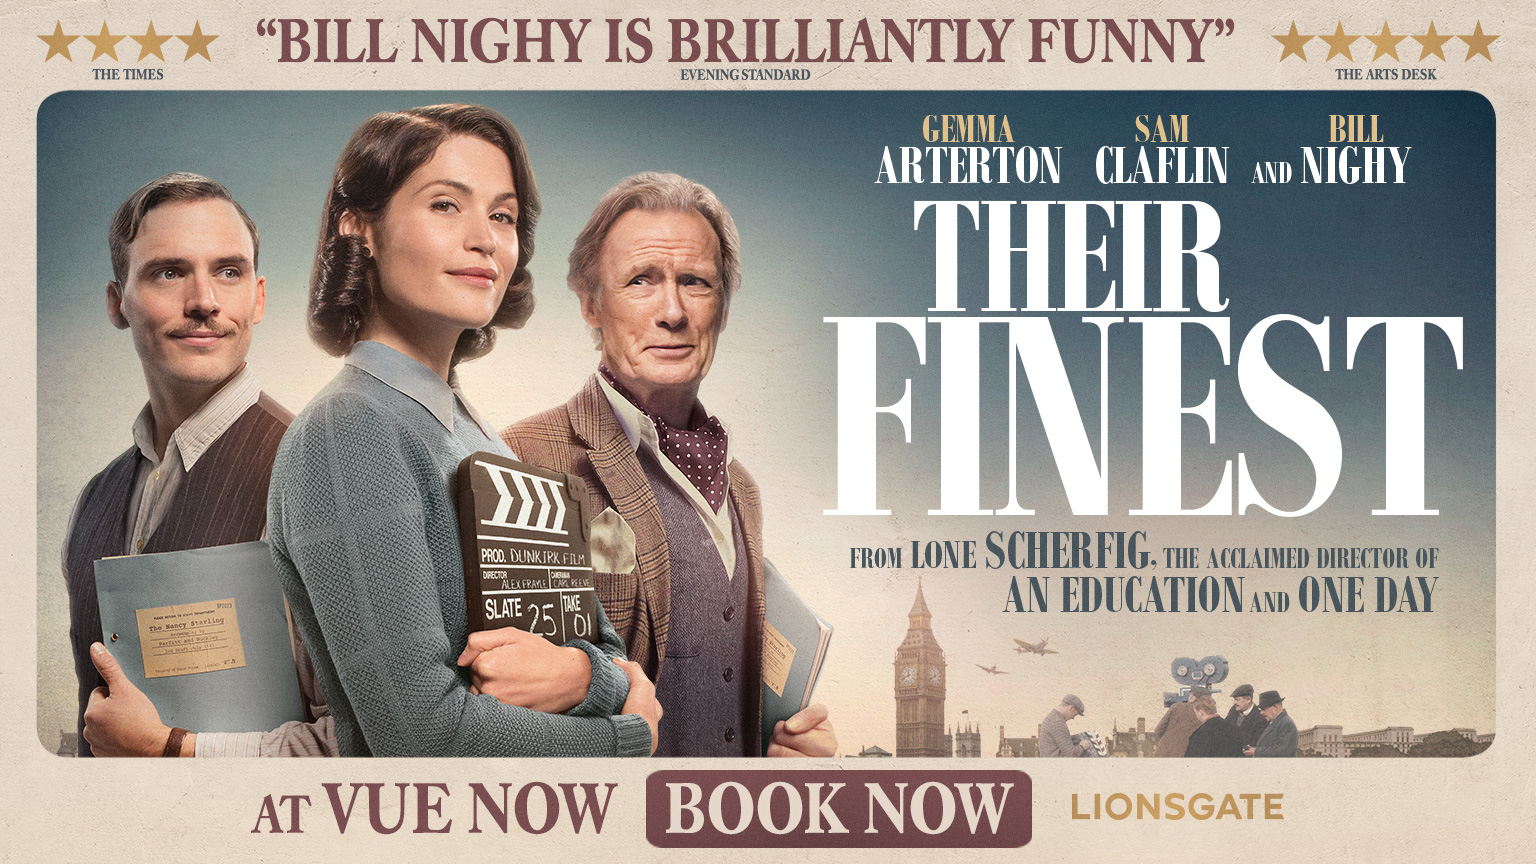 THEIR_FINEST_VUE_HPTAKEOVER_1536x864_MOBILE_NOW.jpg